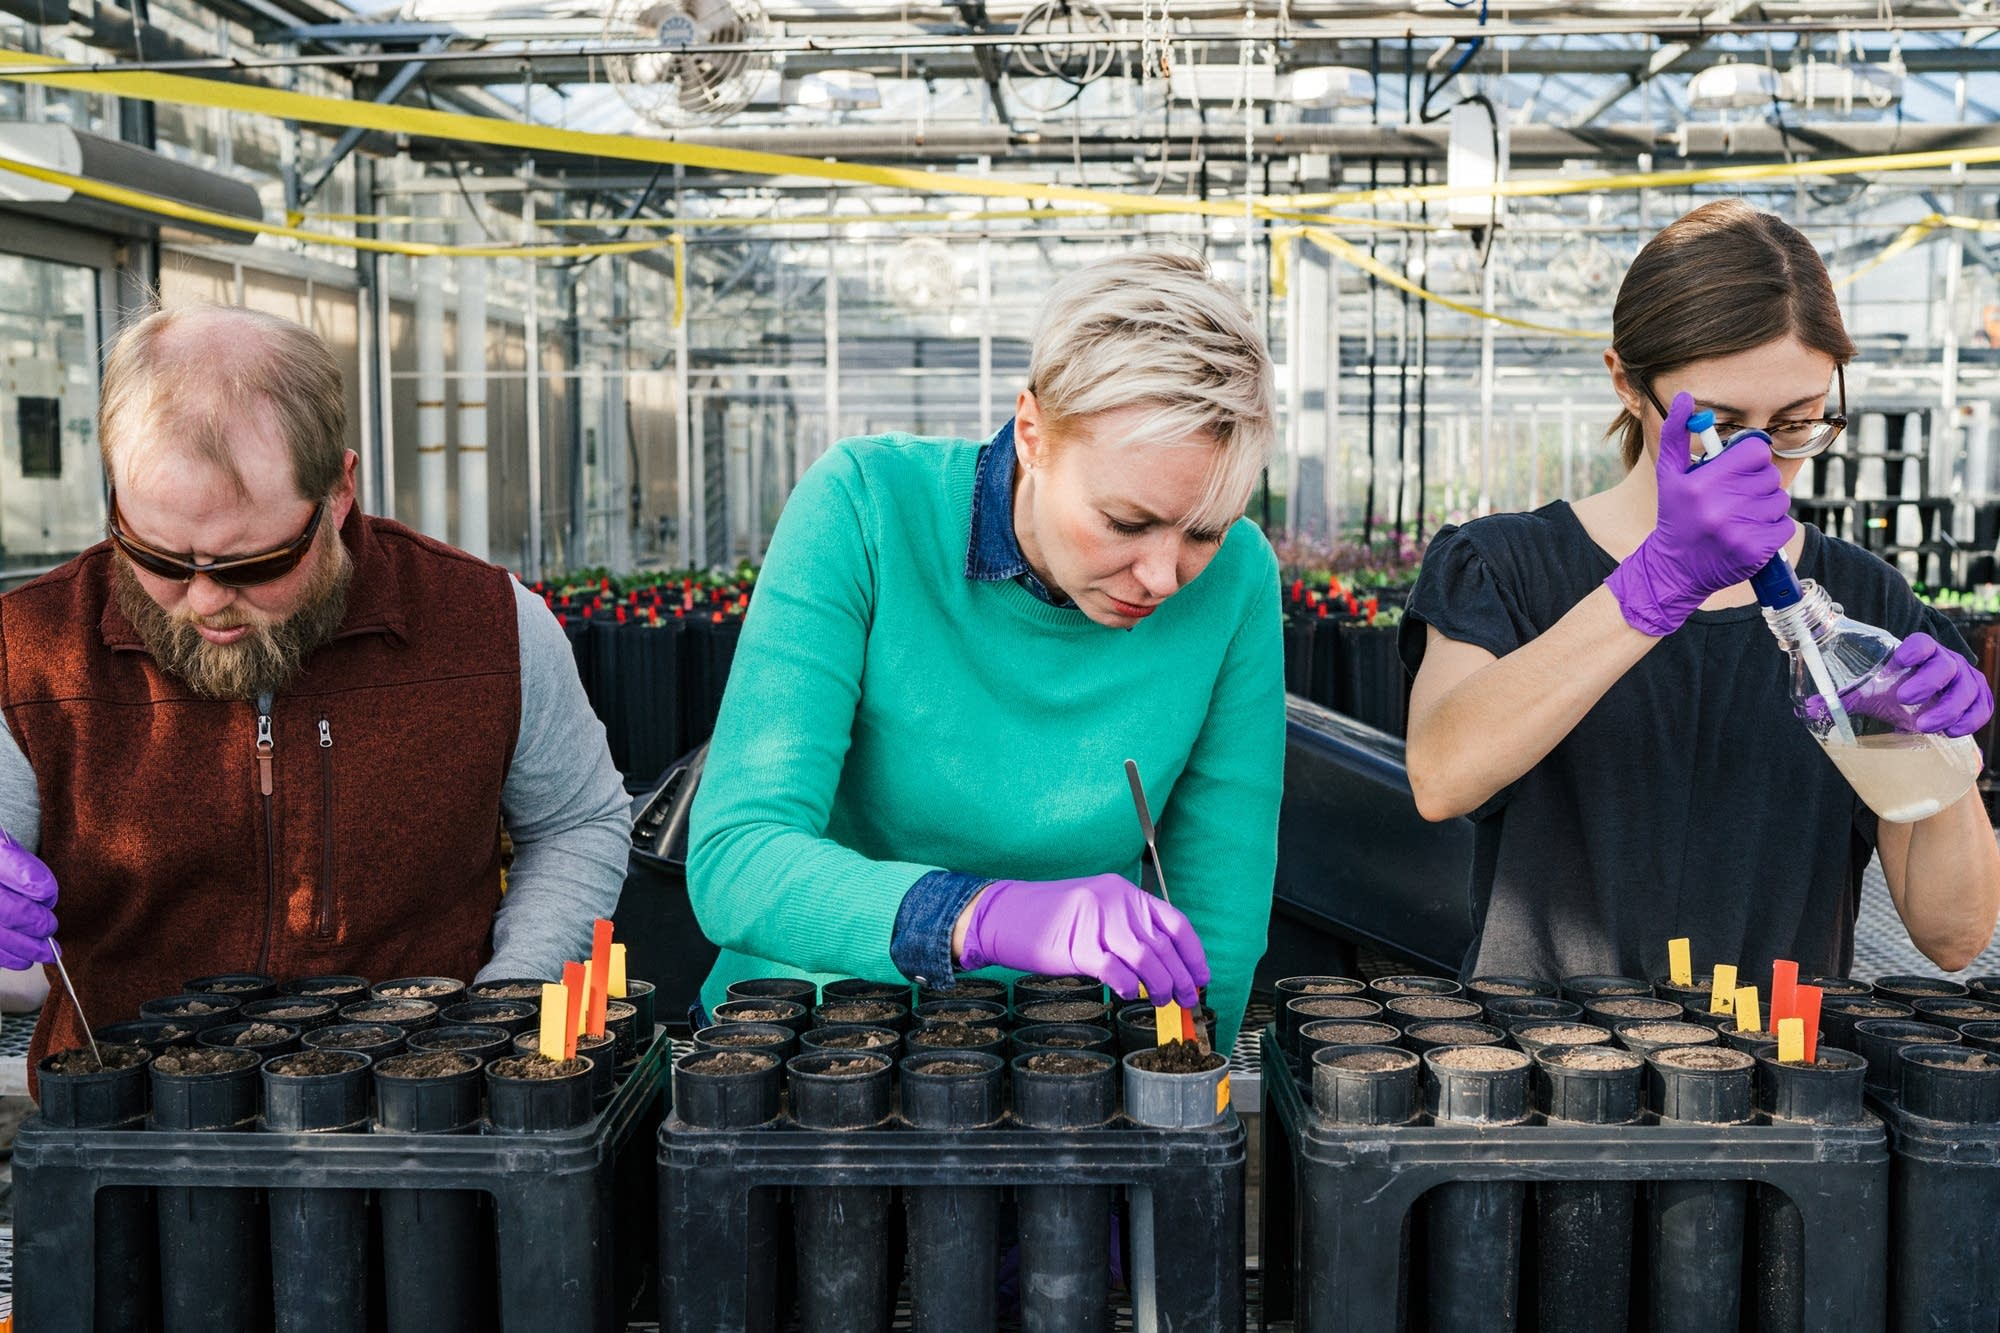 Plant pathology researchers prepare an experiment.